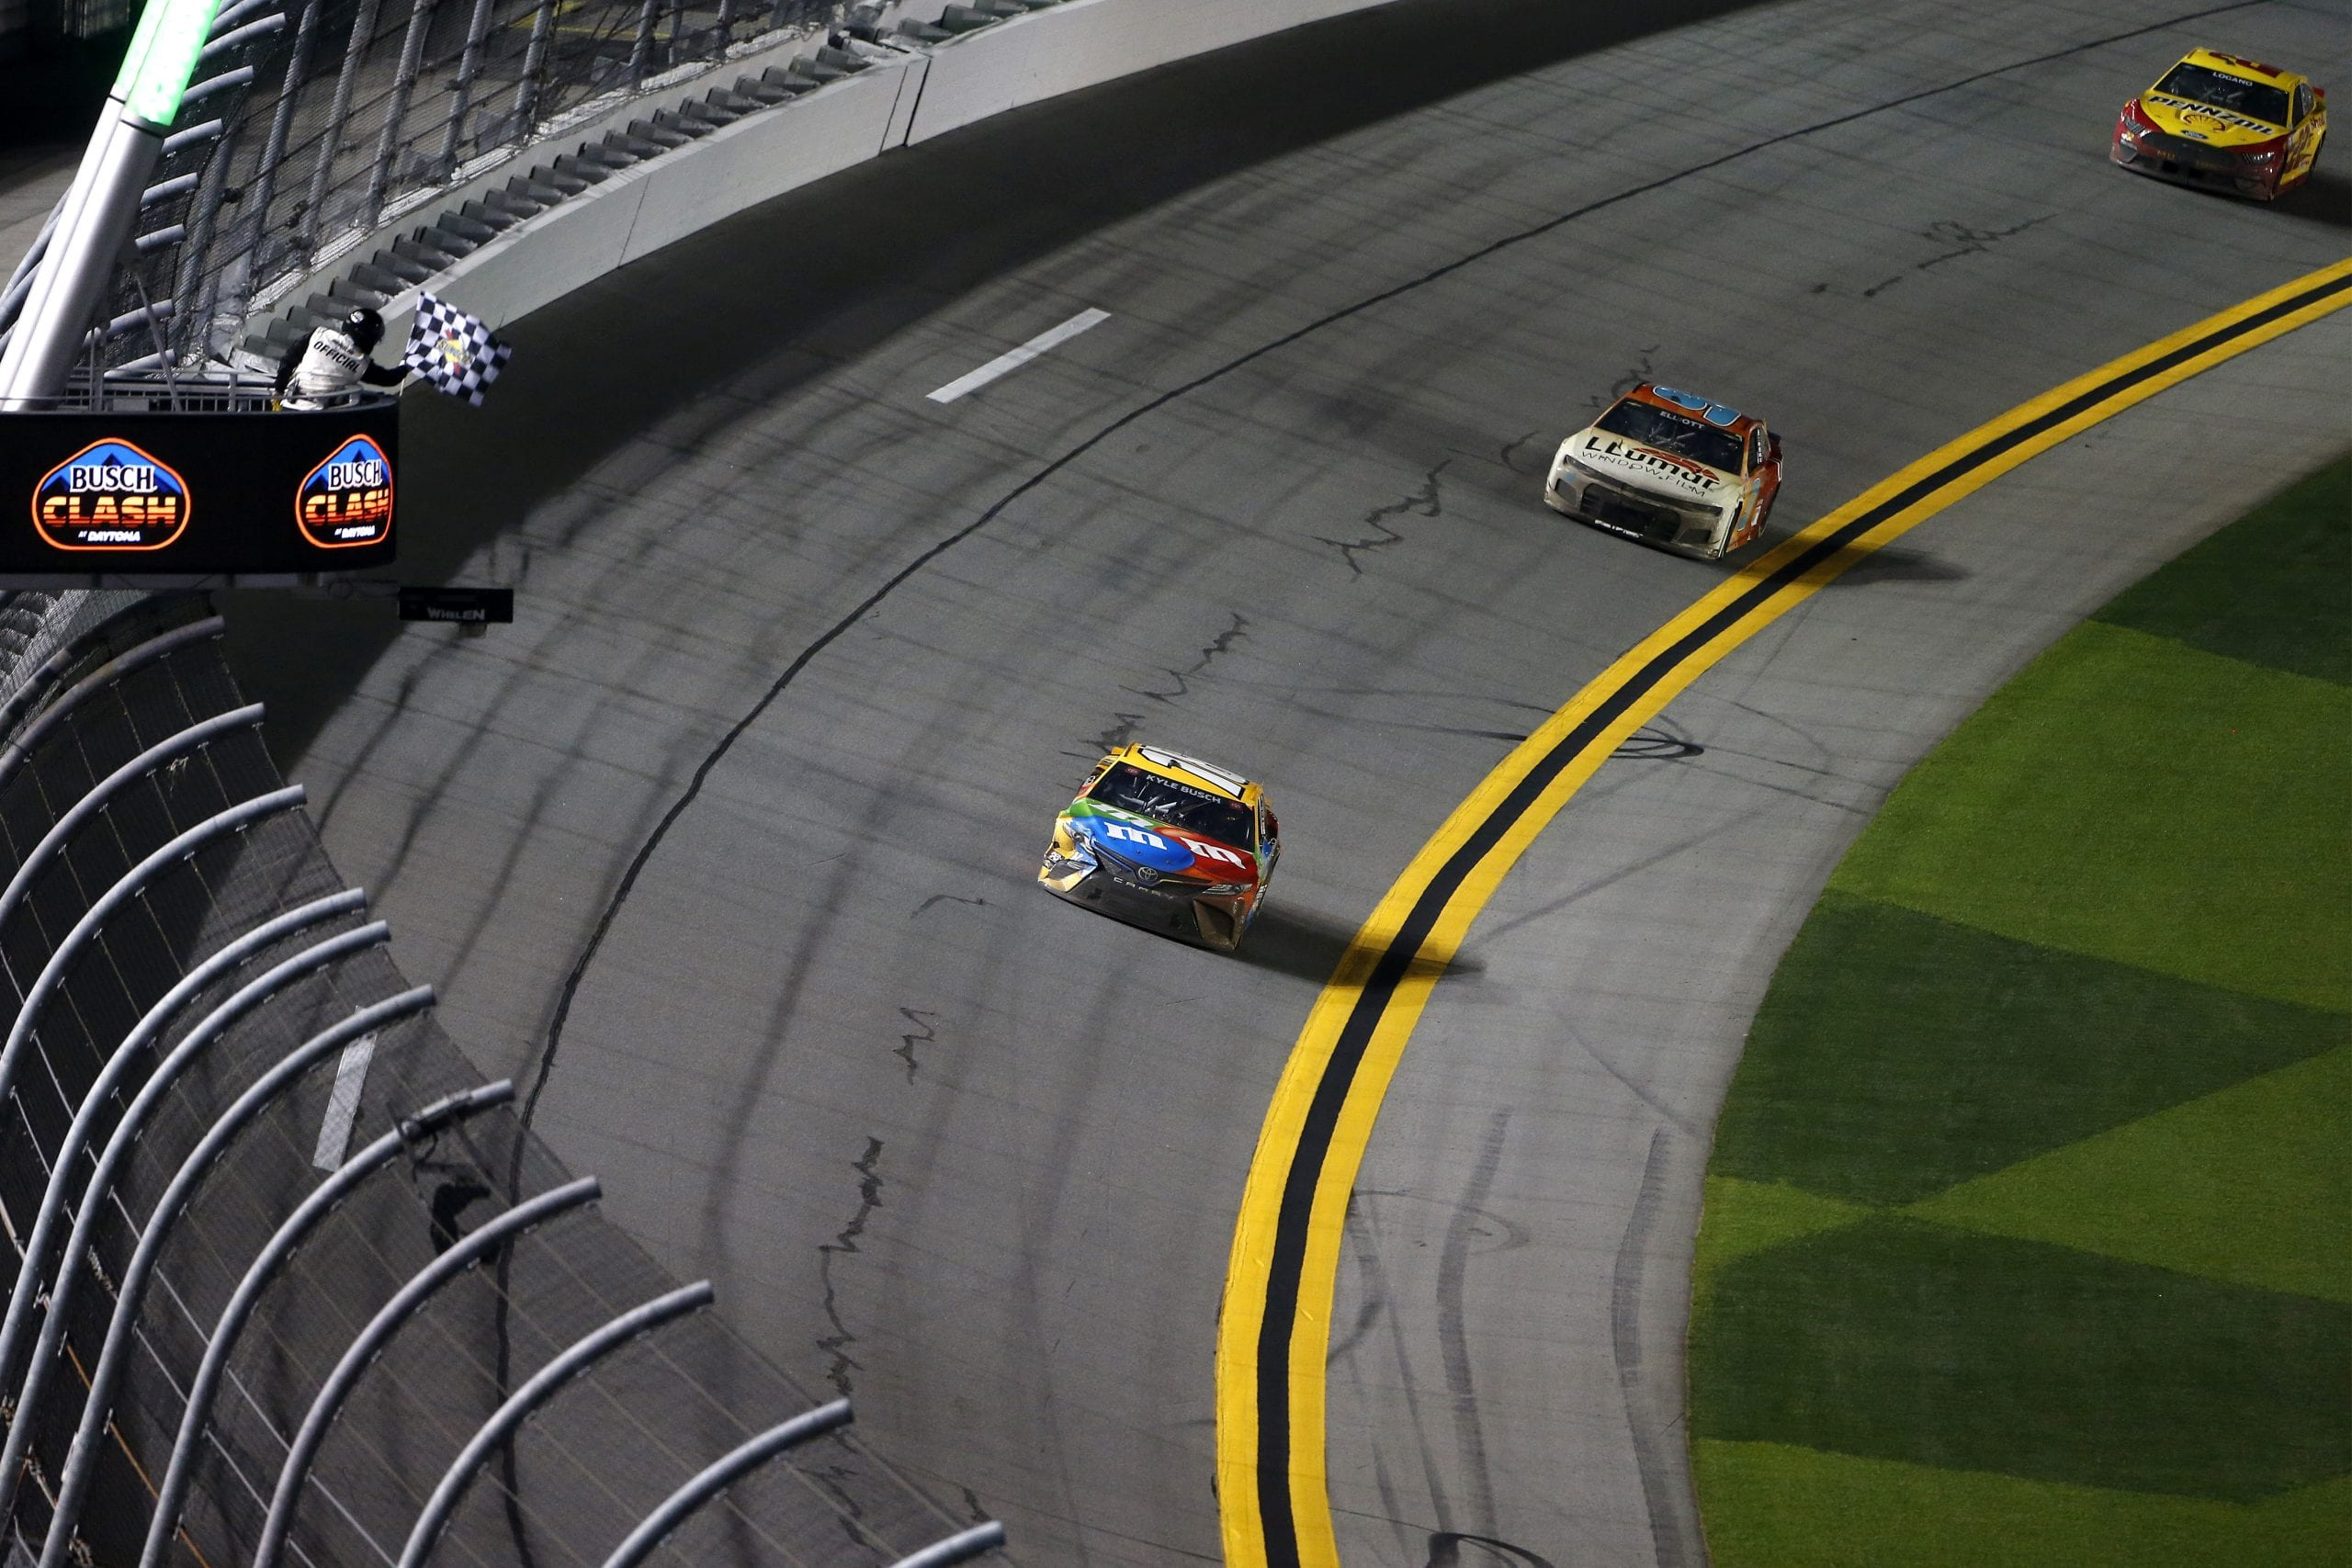 2021 Kicks Off with a Bang in the Busch Clash